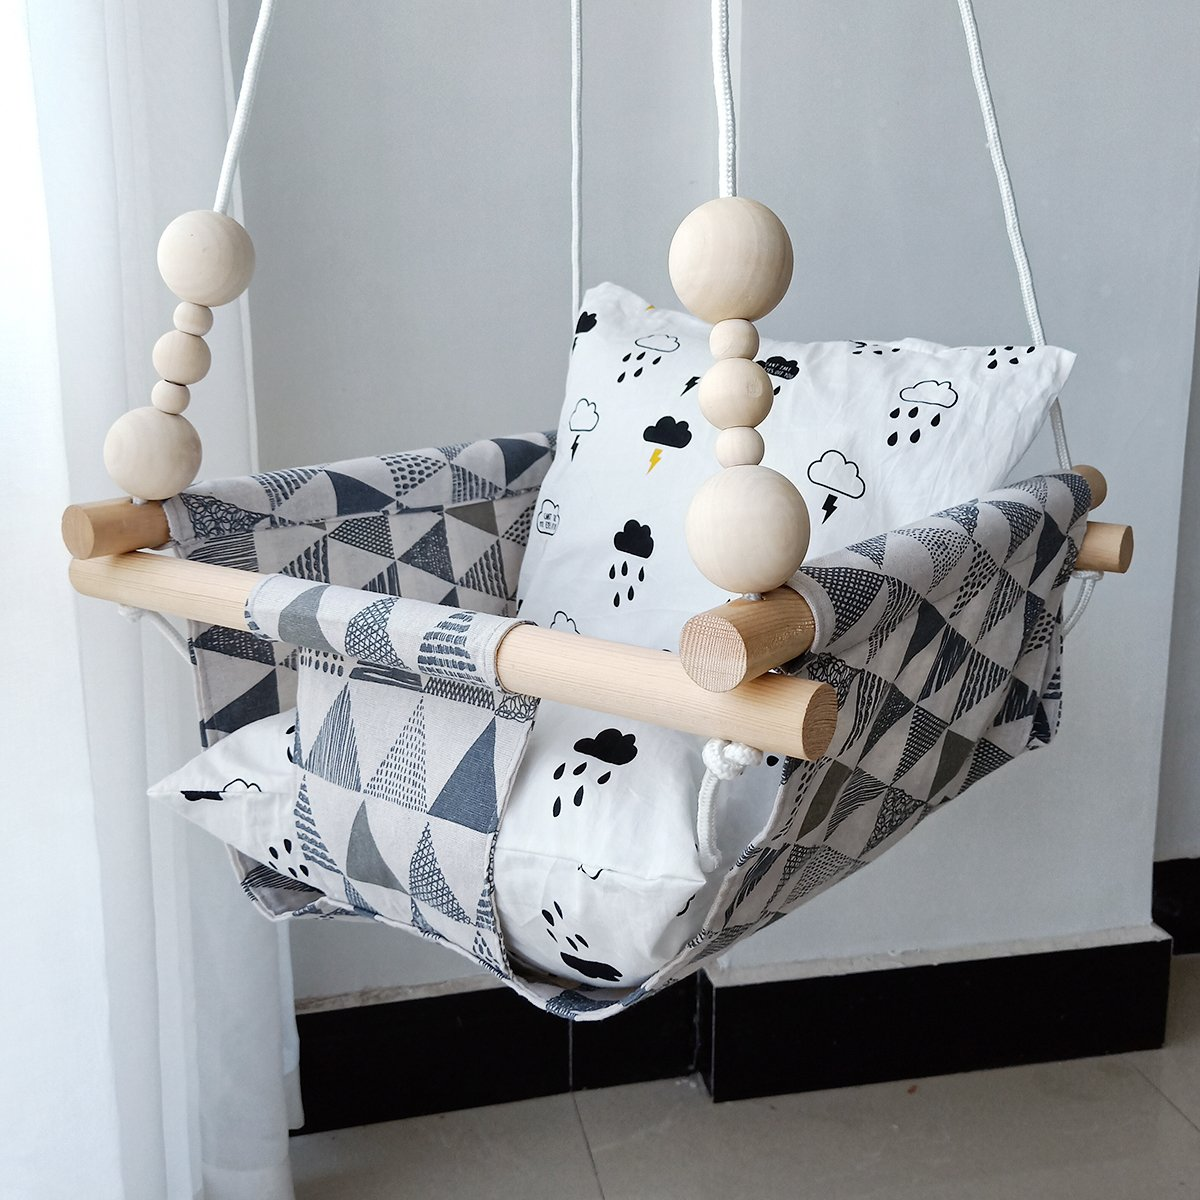 HB.YE Safety Canvas Baby Swing Chair with Wood Protector, Kids Outdoor Swing Seat Hanging Hammock with Cushion and Beads, Warm Nursery Decor - Grey Triangular BB00156-2UK